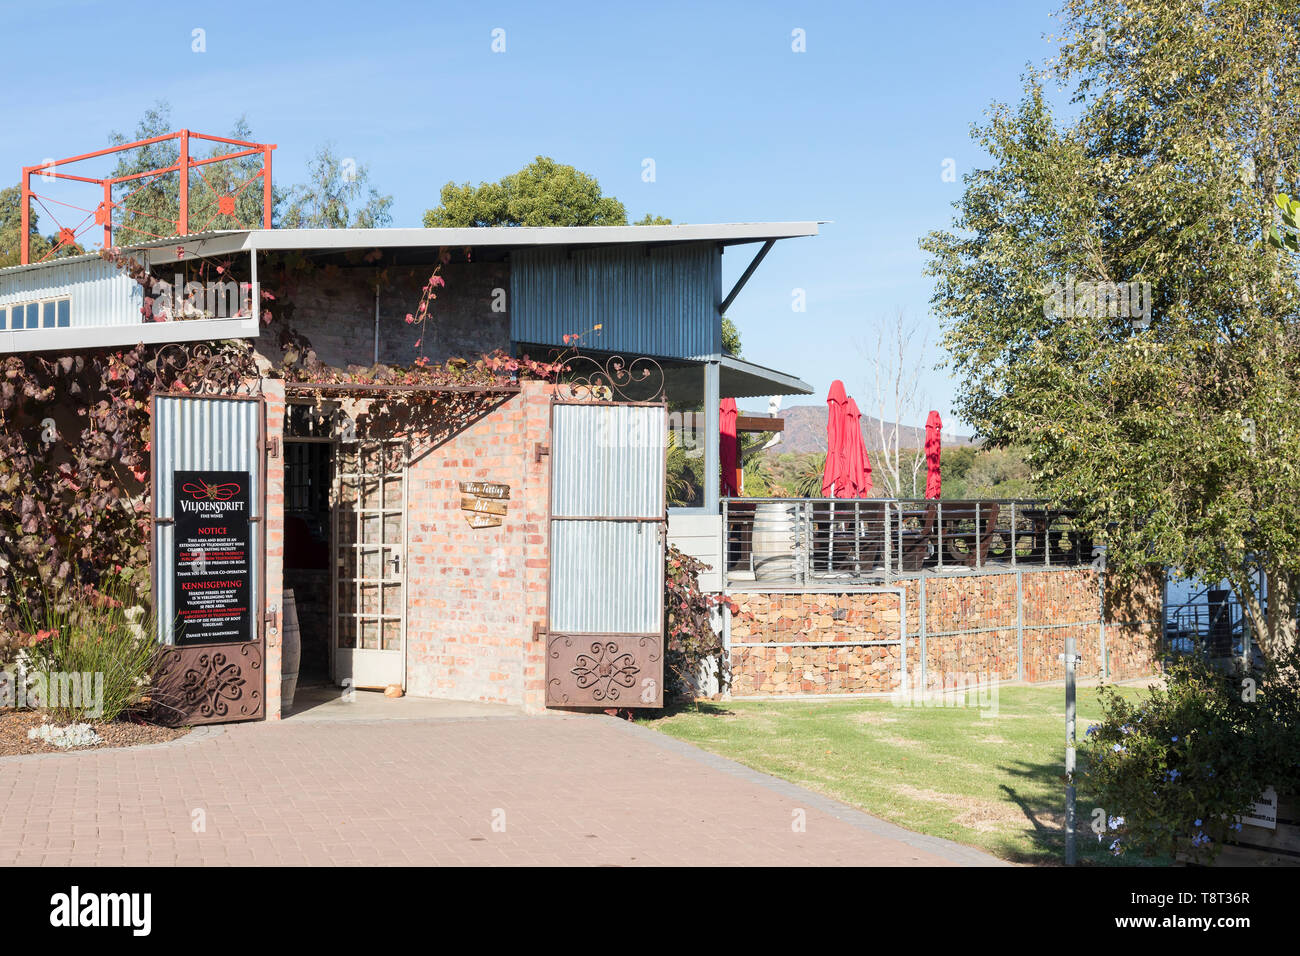 Viljoensdrift Wine Estate, Robertson Wine Valley, Route 62, Breede River, Western Cape Winelands, South Africa. Entrance to the Breede River wine tast - Stock Image